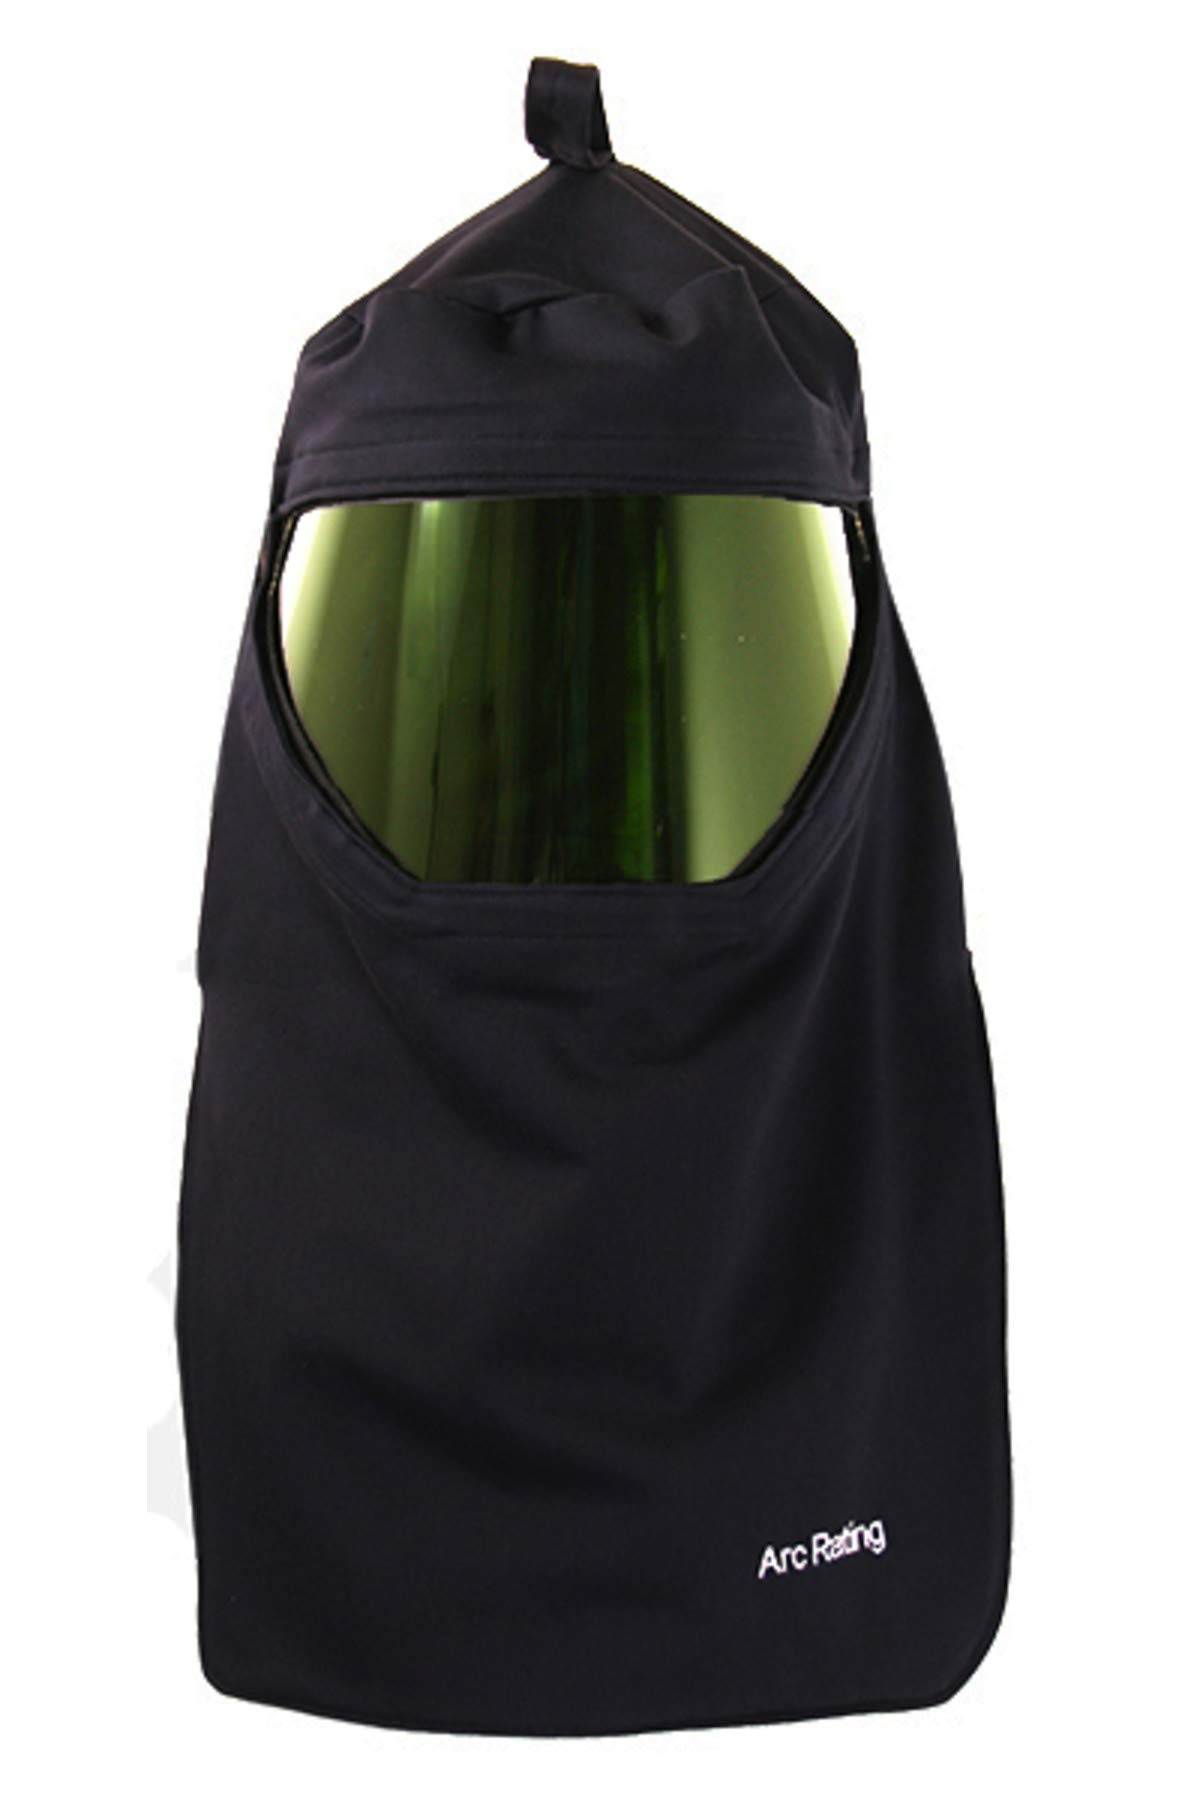 National Safety Apparel H65UPHH ArcGuard Arc Flash Hood with Universal Adapter, 12 Calorie, One Size, Navy by National Safety Apparel Inc